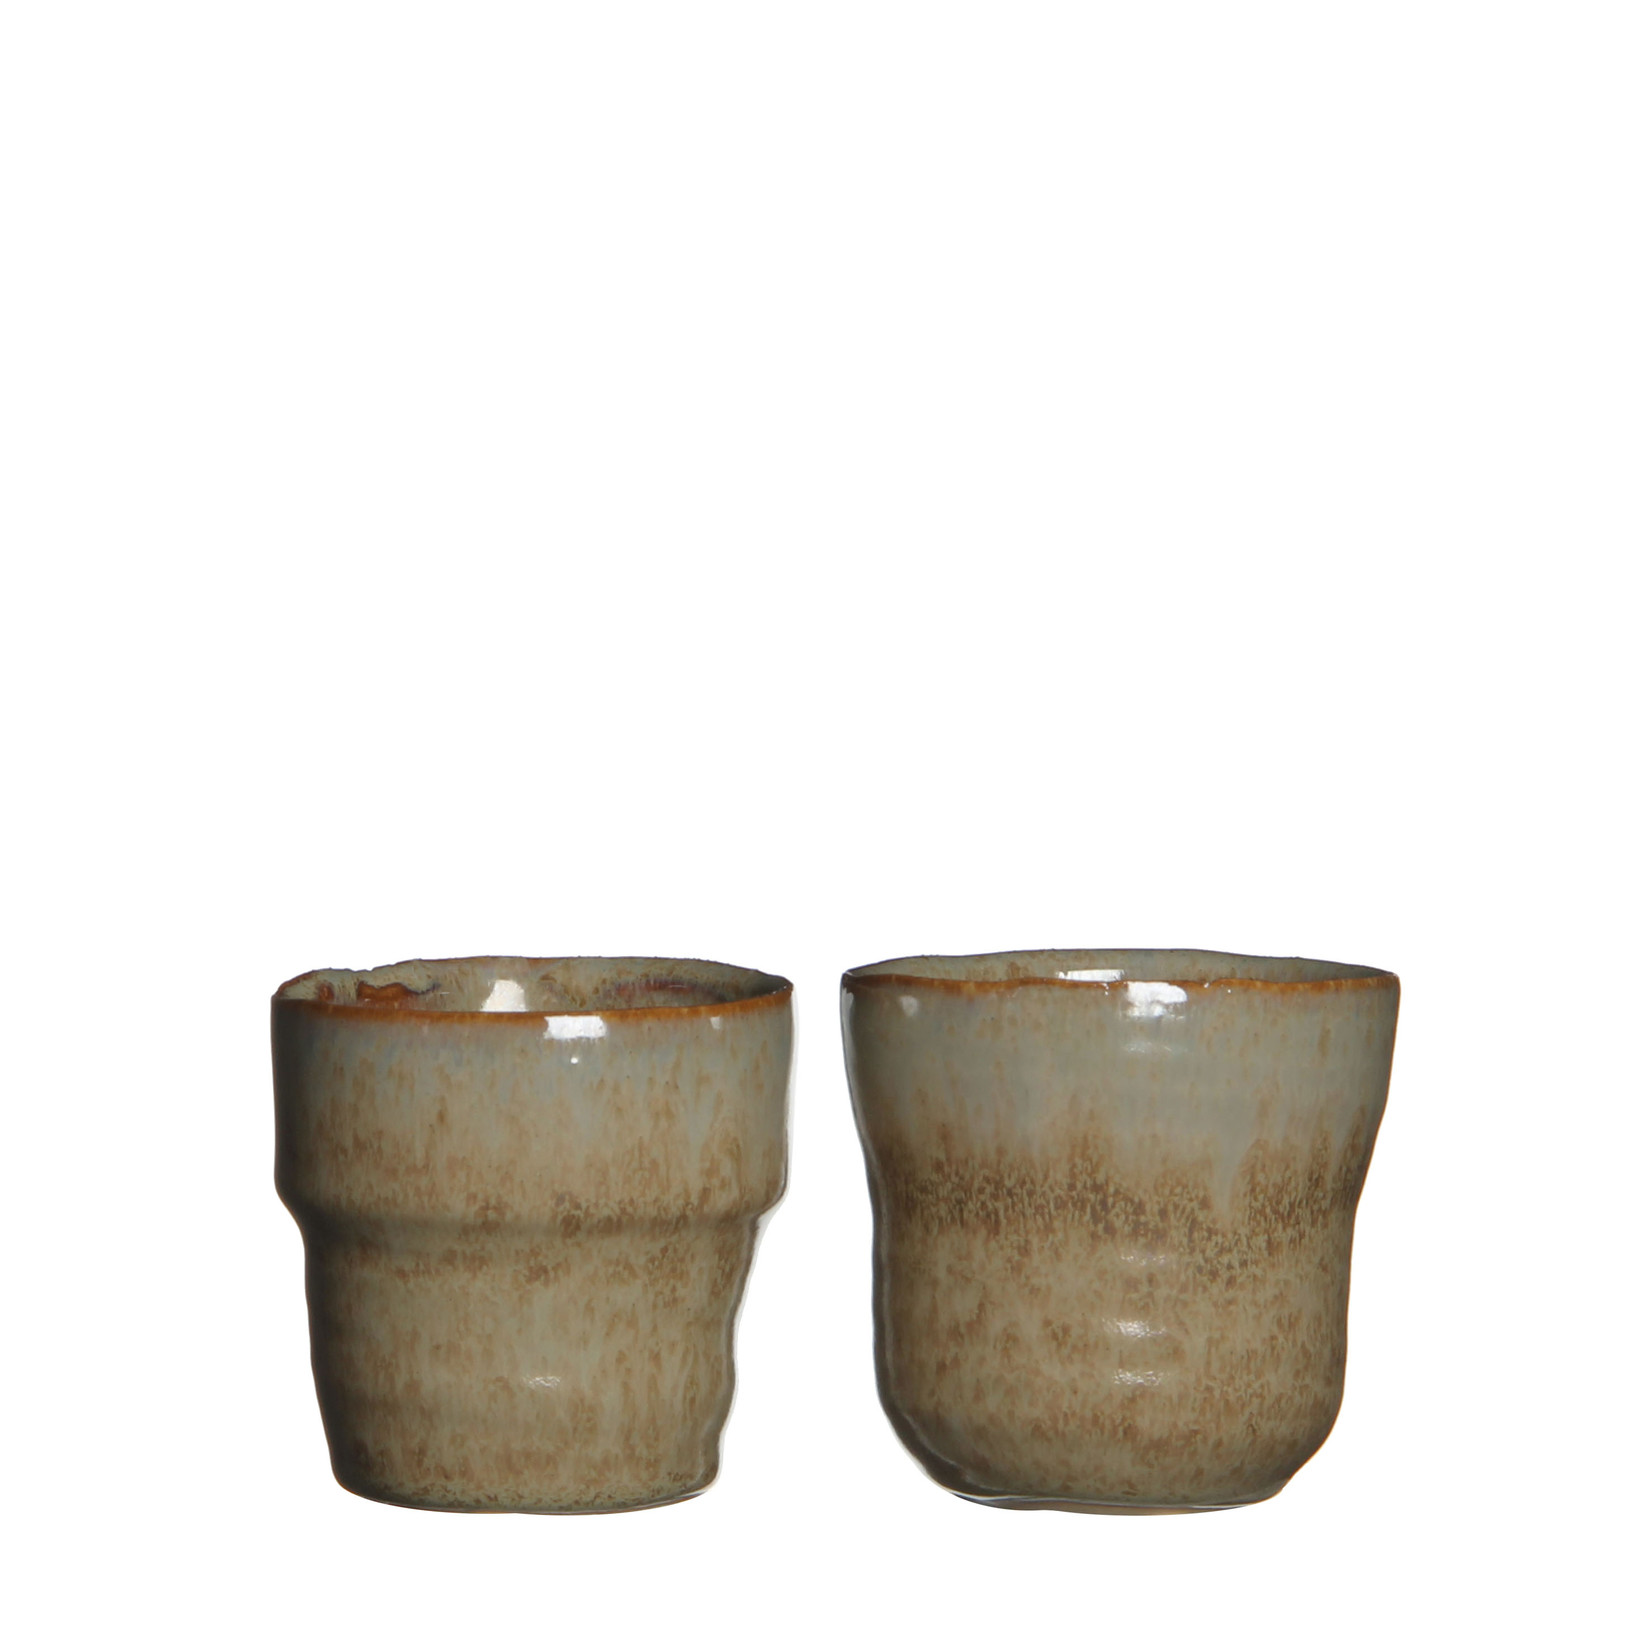 MiCa 1006526 Stef pot round taupe